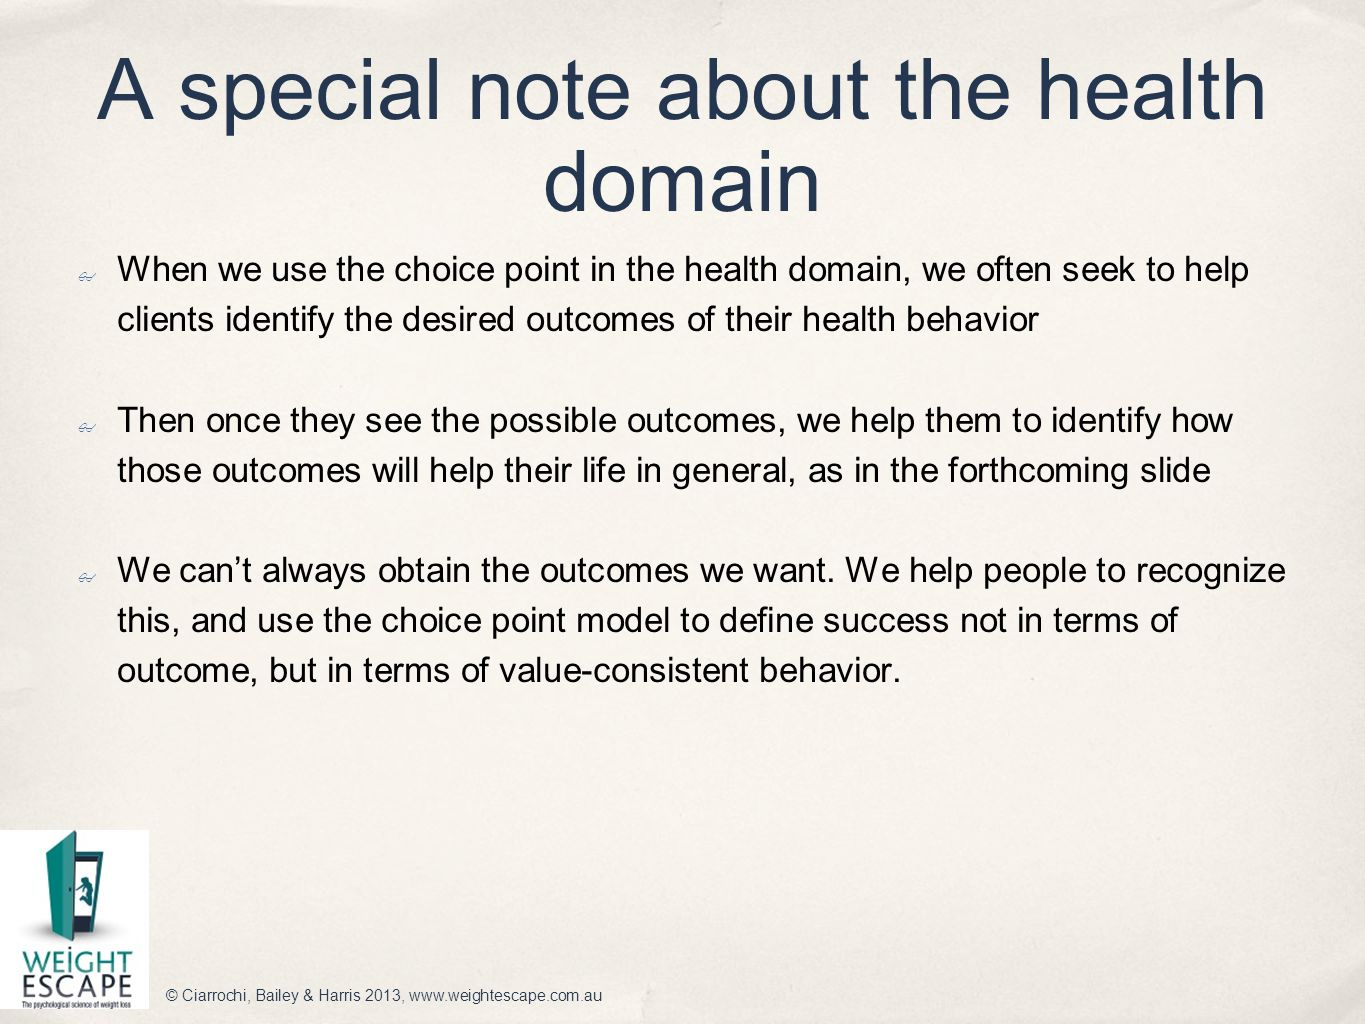 A special note about the health domain